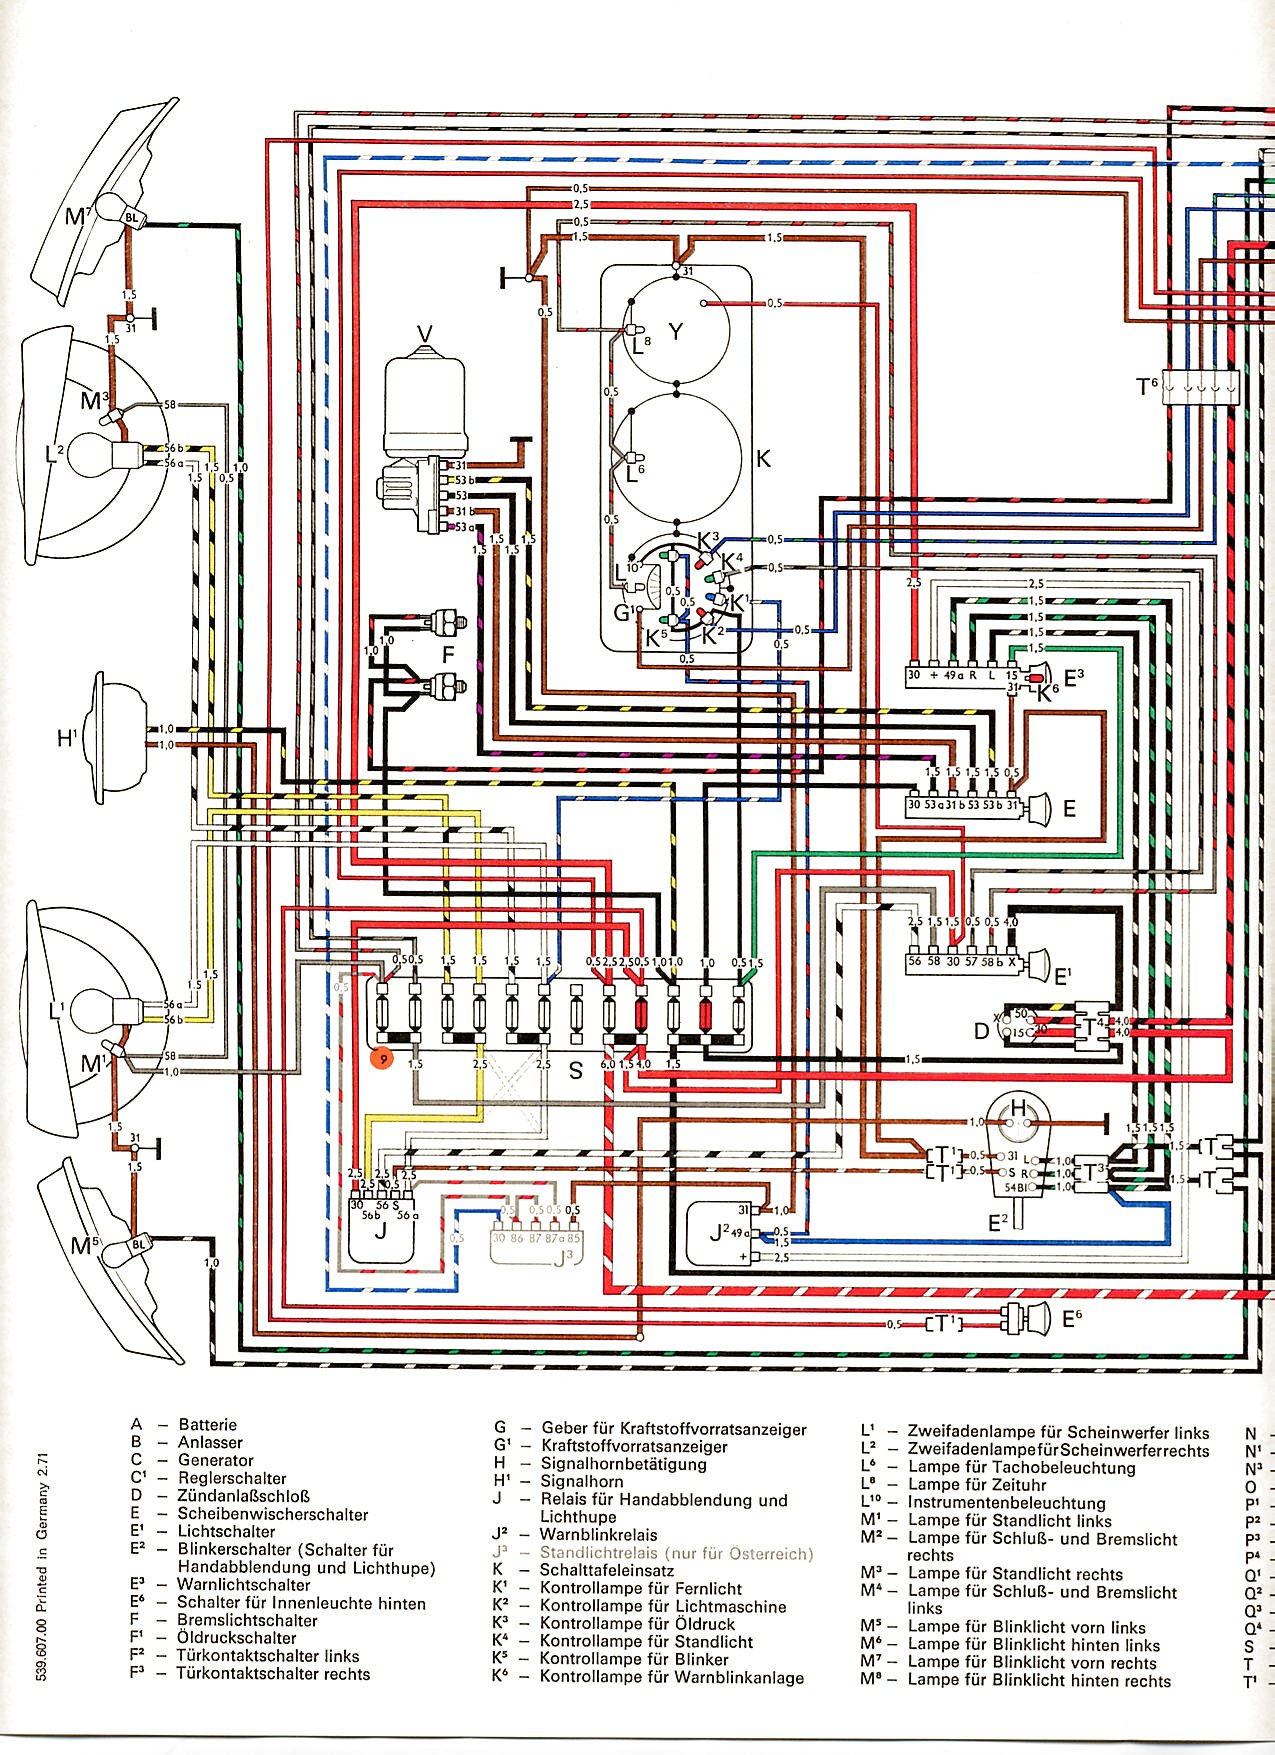 Vw Bus And Other Wiring Diagrams 1986 Kawasaki 250 Diagram Free Picture Com